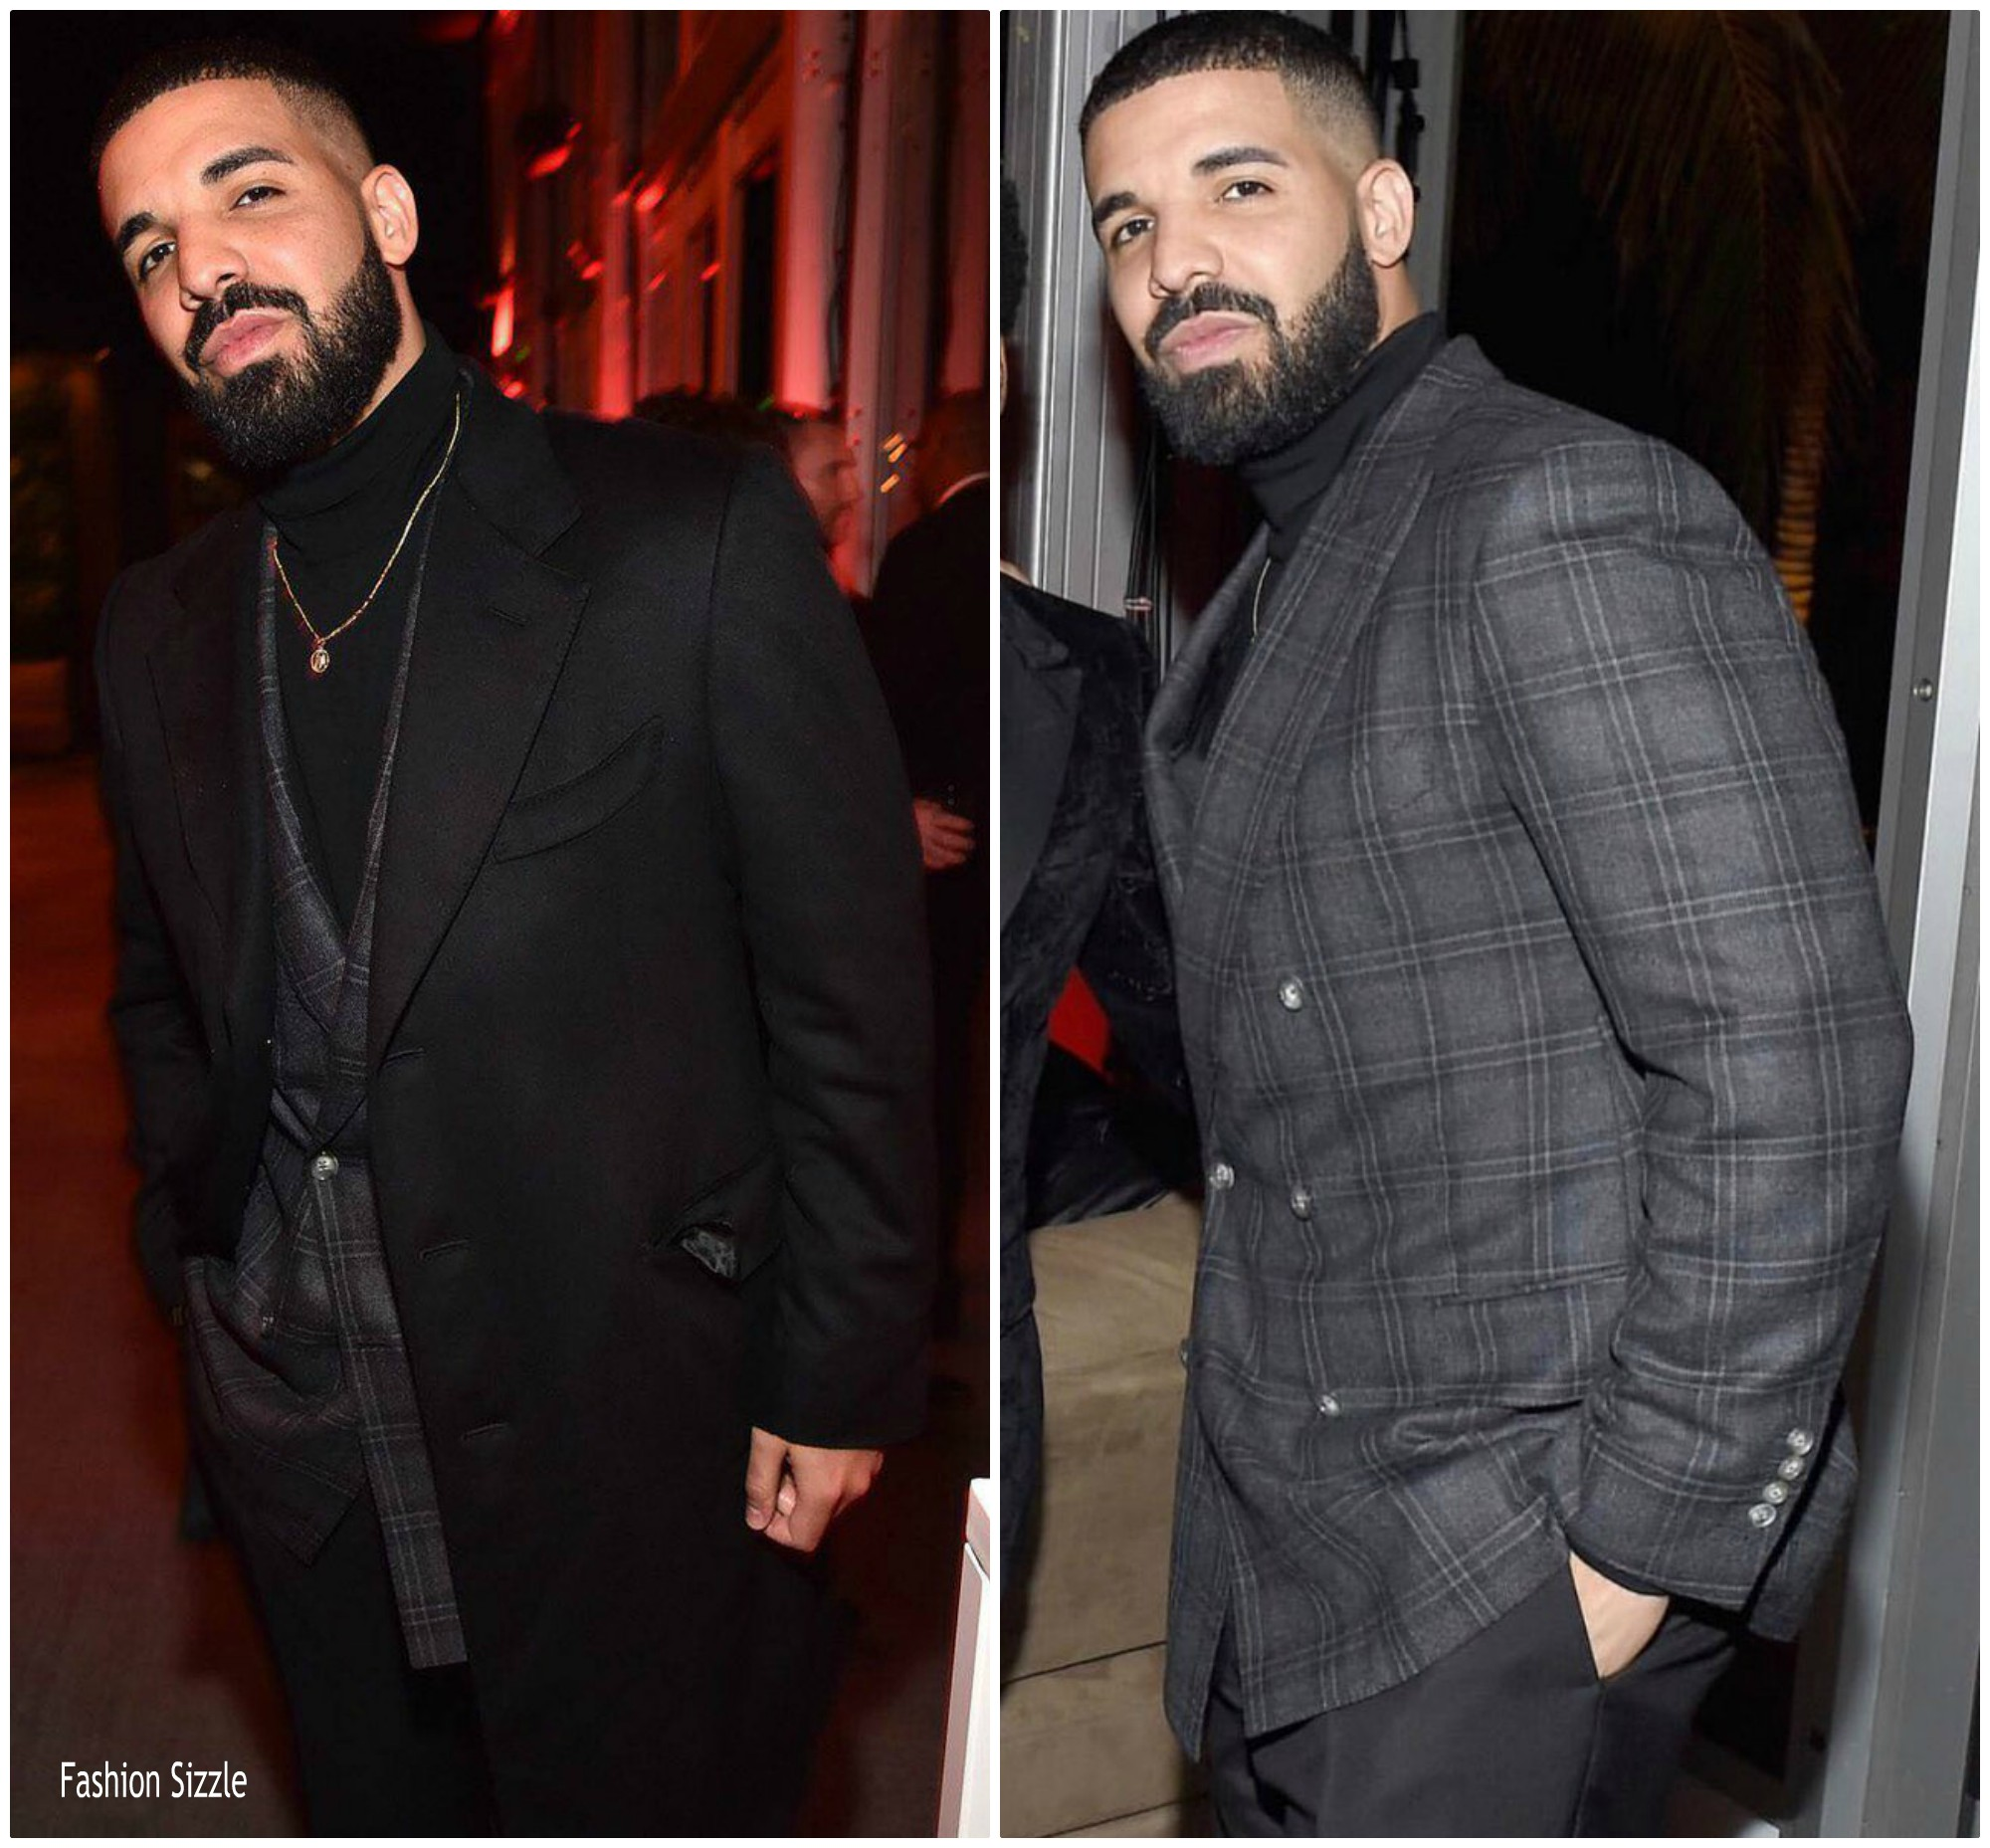 e8b0a1d07f Drake In Tom Ford   2018 Vanity Fair Oscar Party - Fashionsizzle